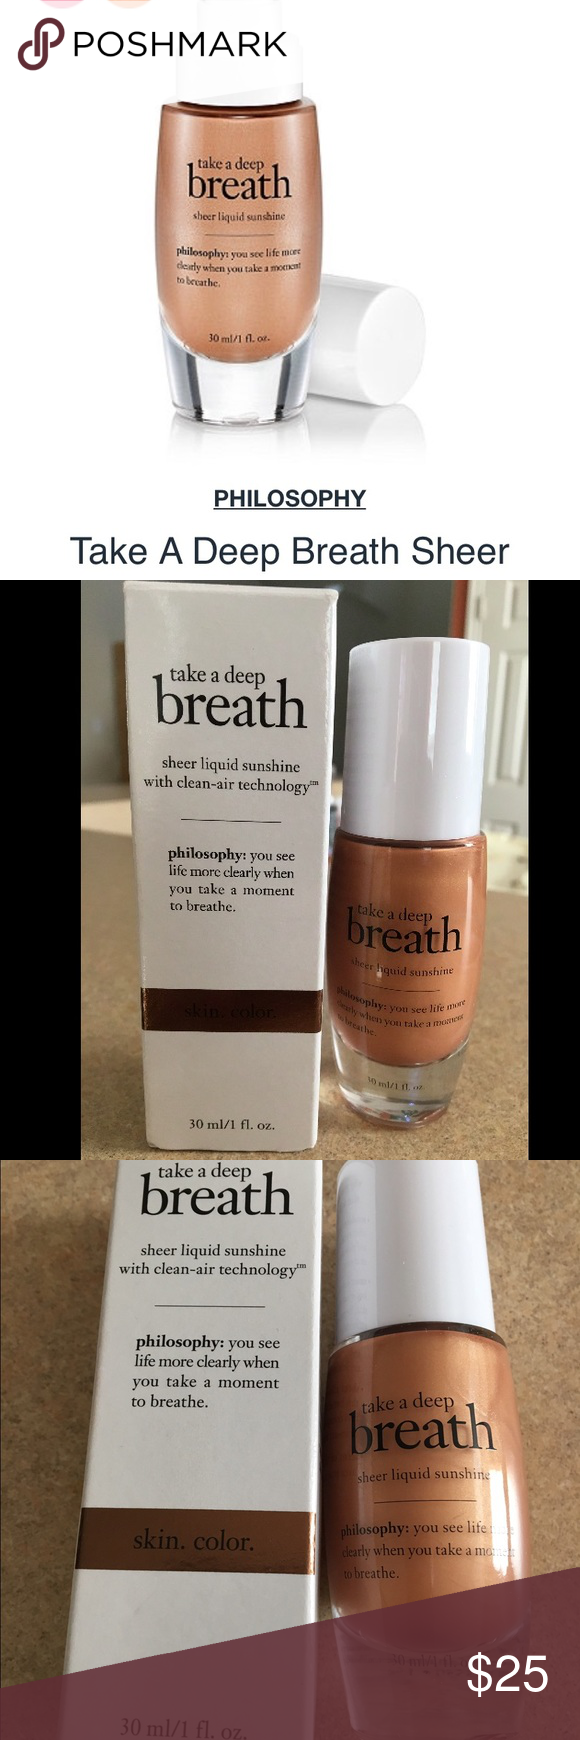 Philosophy Sheer liquid sunshine New in box take a deep breath sheer liquid sunshine with clean air technology. Leaves your skin with a subtle bronze and natural luminosity! Retails for $35 Philosophy Makeup Bronzer